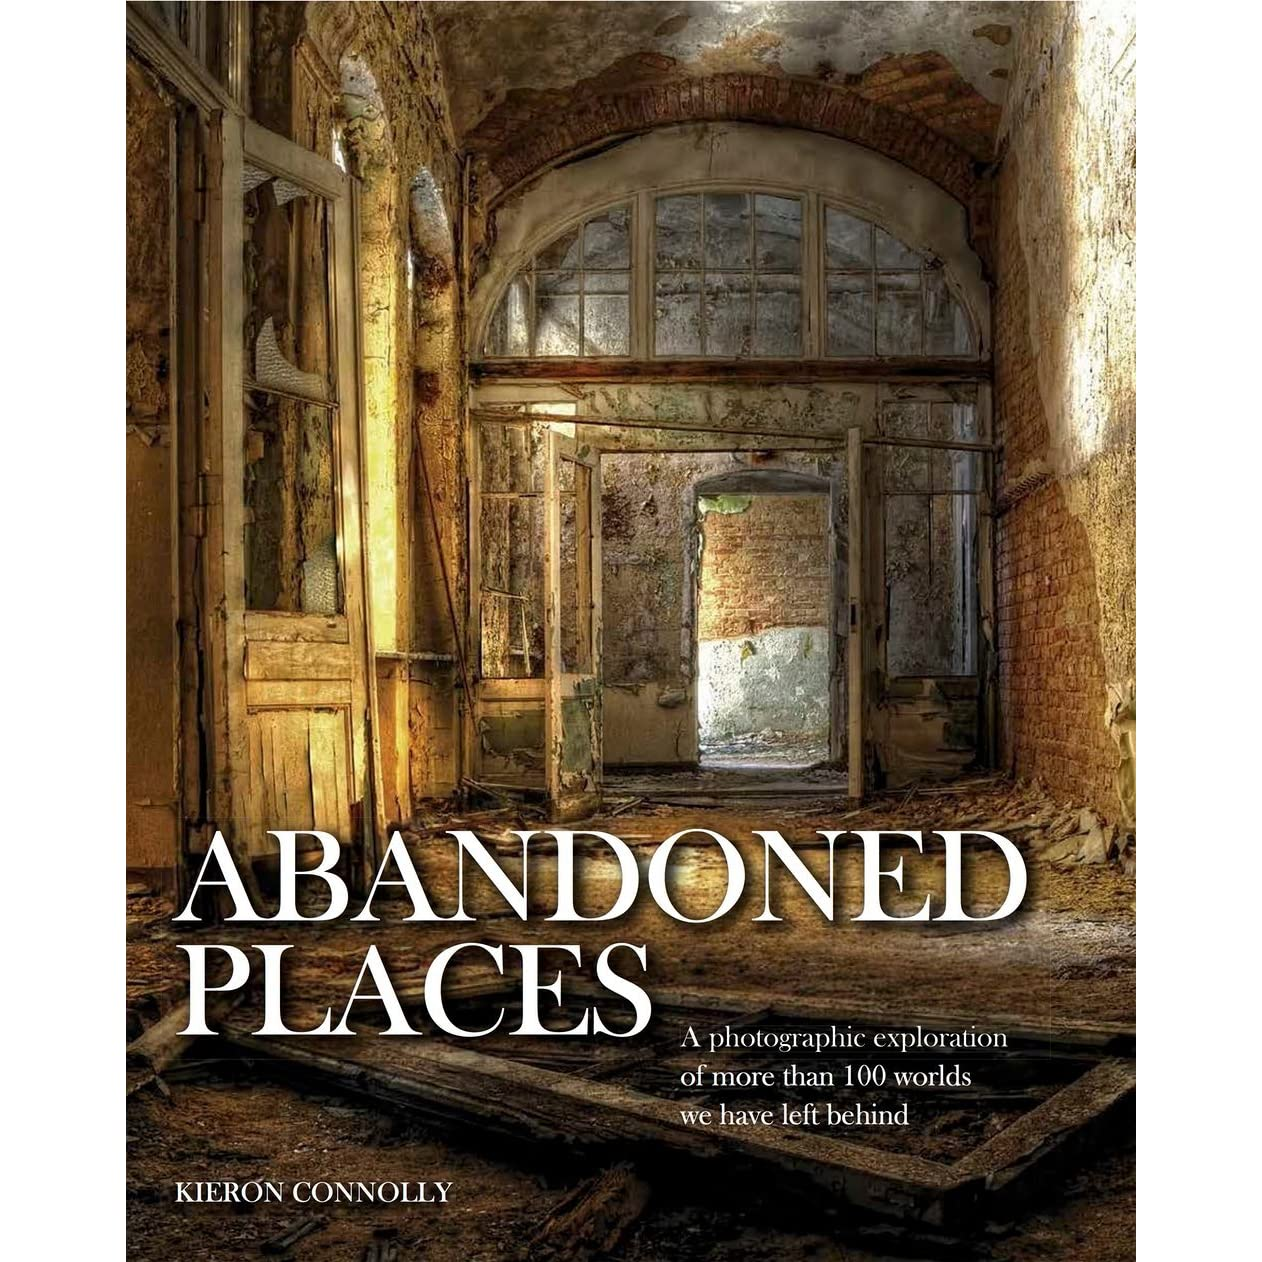 Abandoned Places by Kieron Connolly